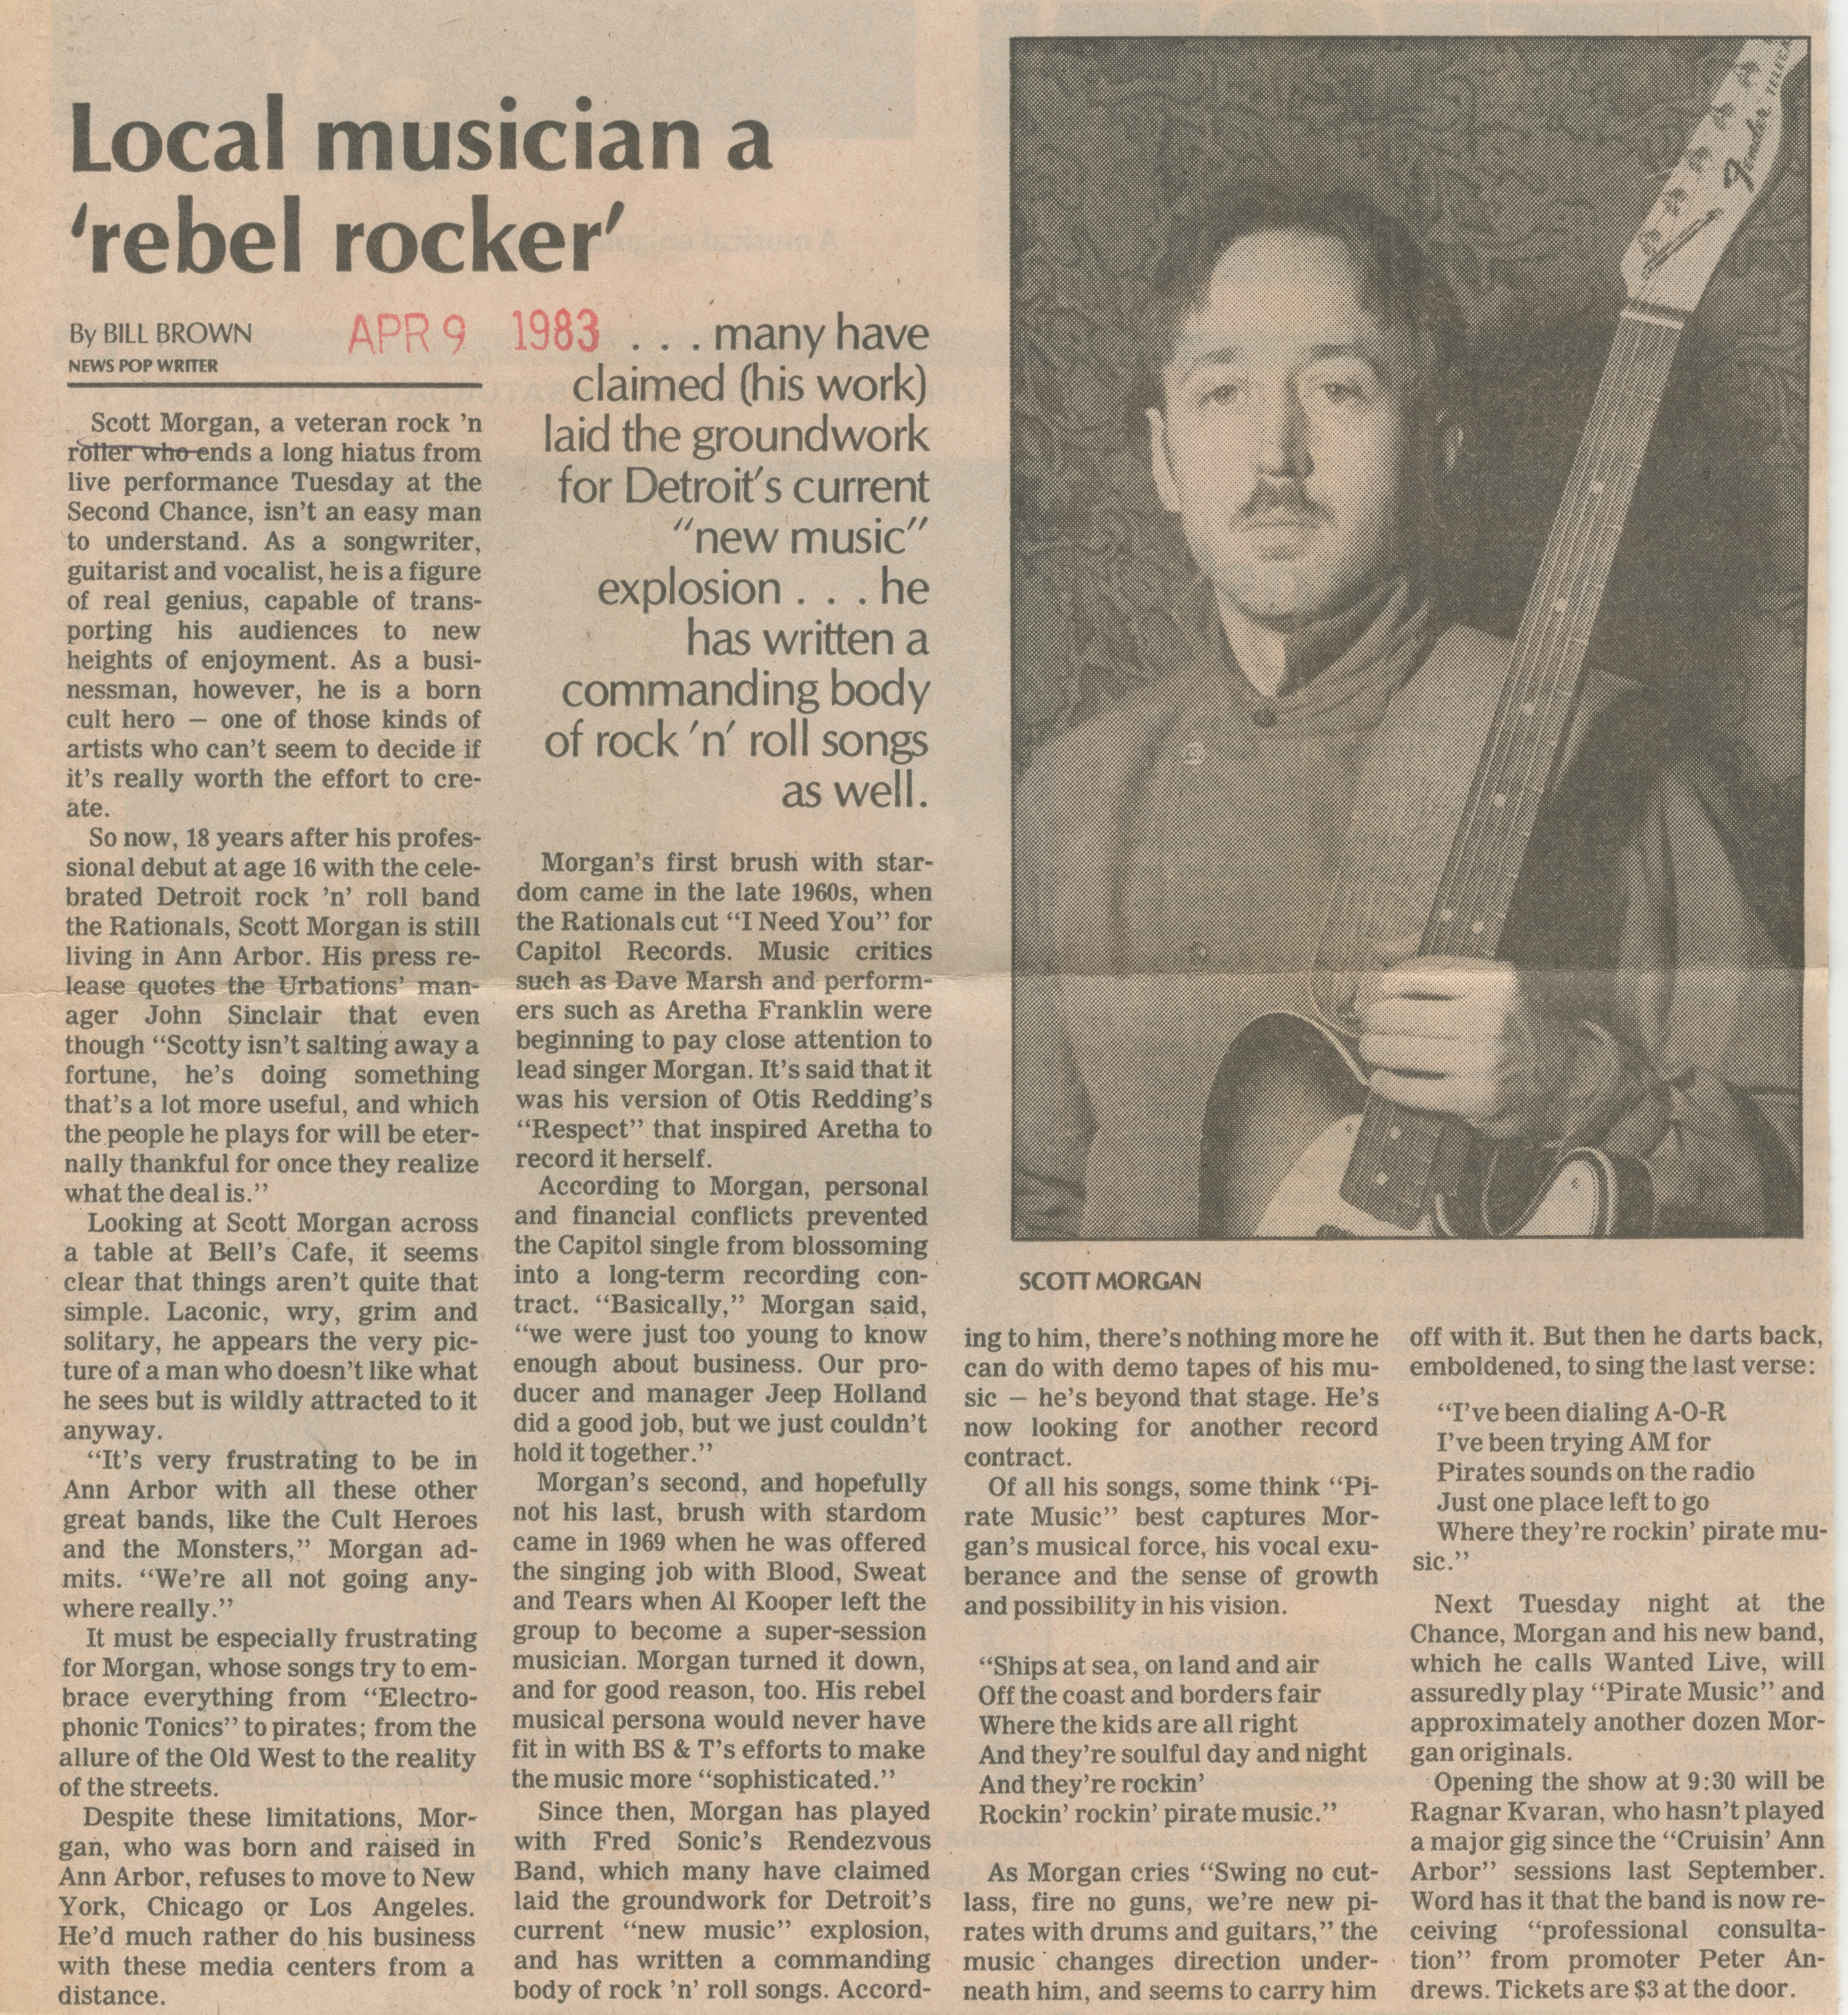 Local Musician A 'Rebel Rocker' image